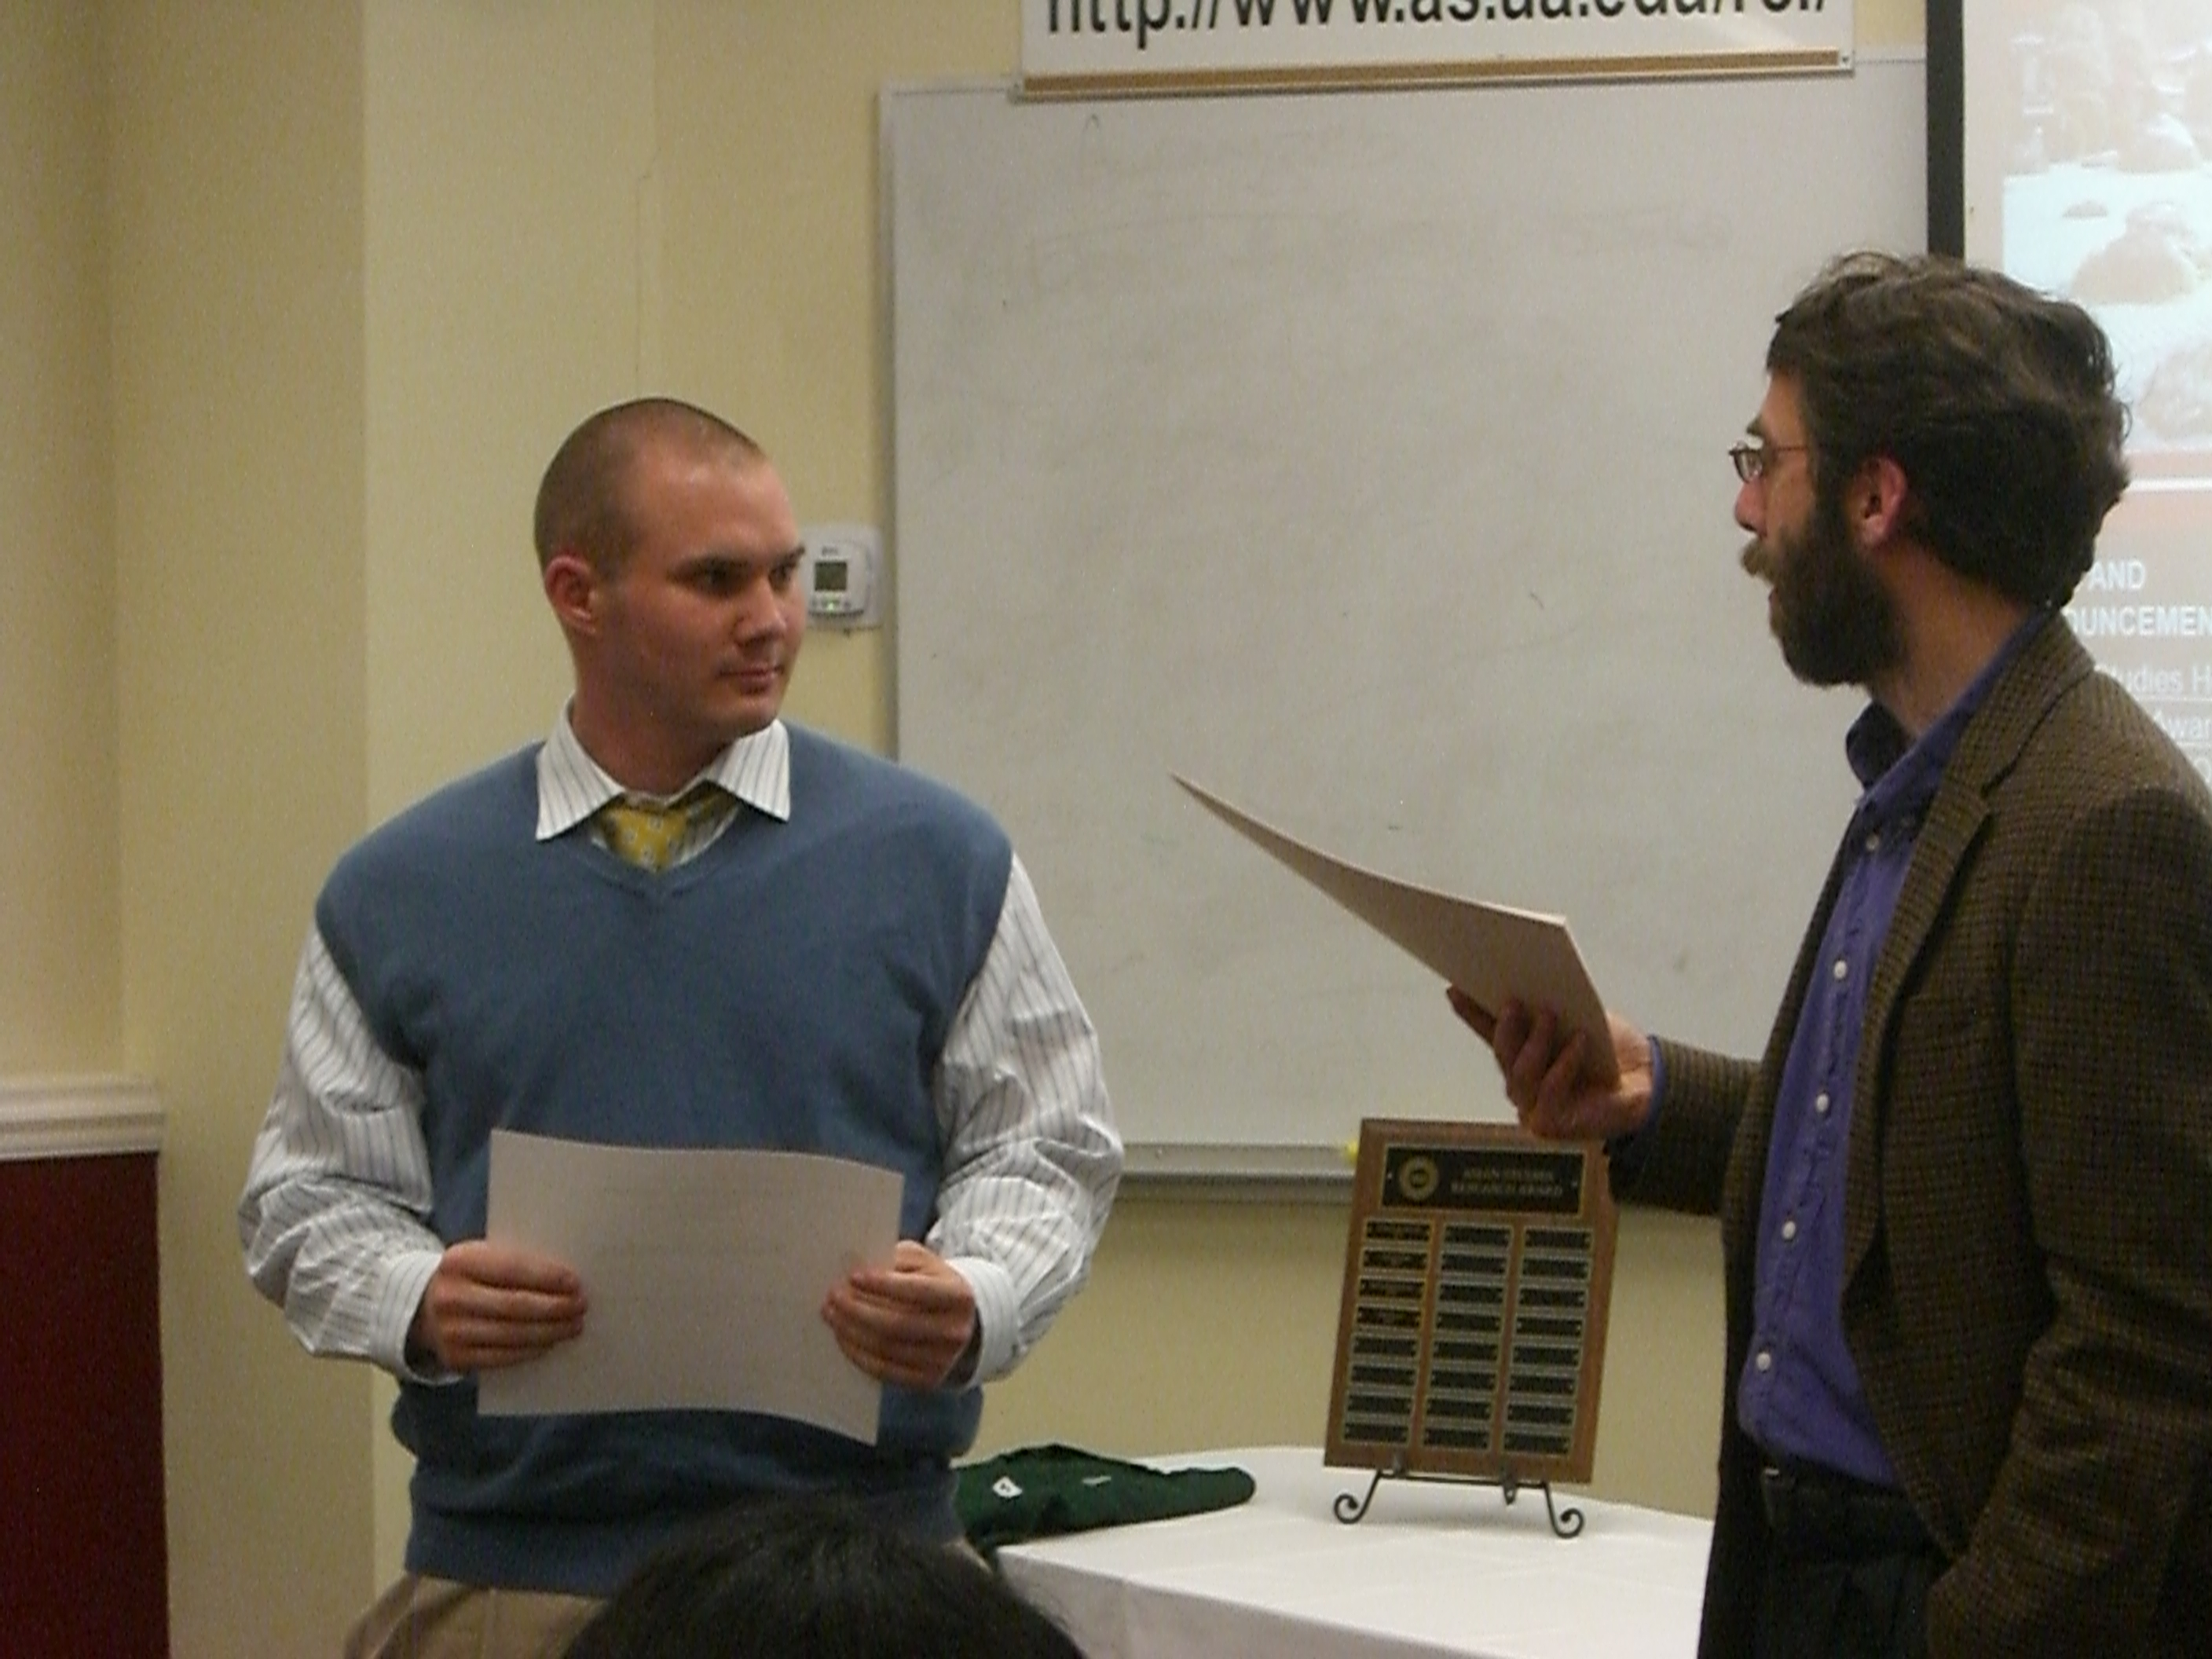 Nicholas Crenshaw receiving the Outstanding Student Award